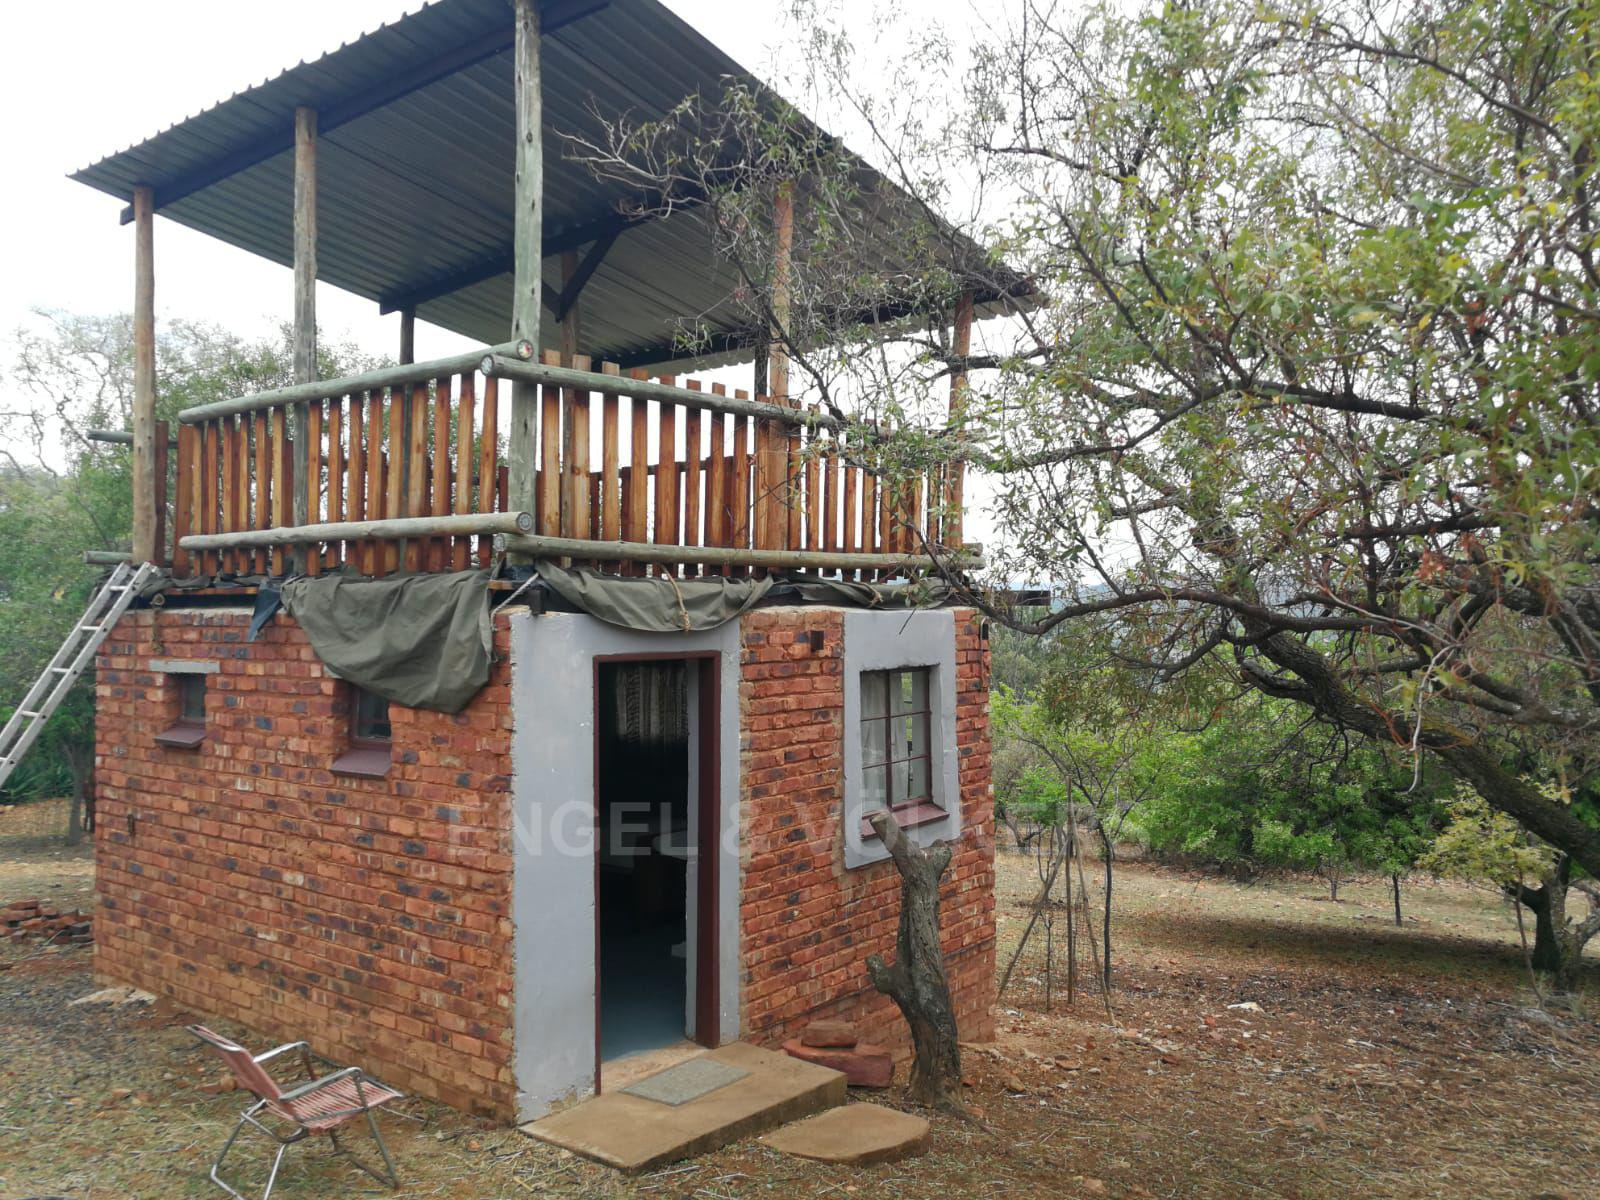 Land in Hartbeespoort Dam Area - Fun outside house and look out patio